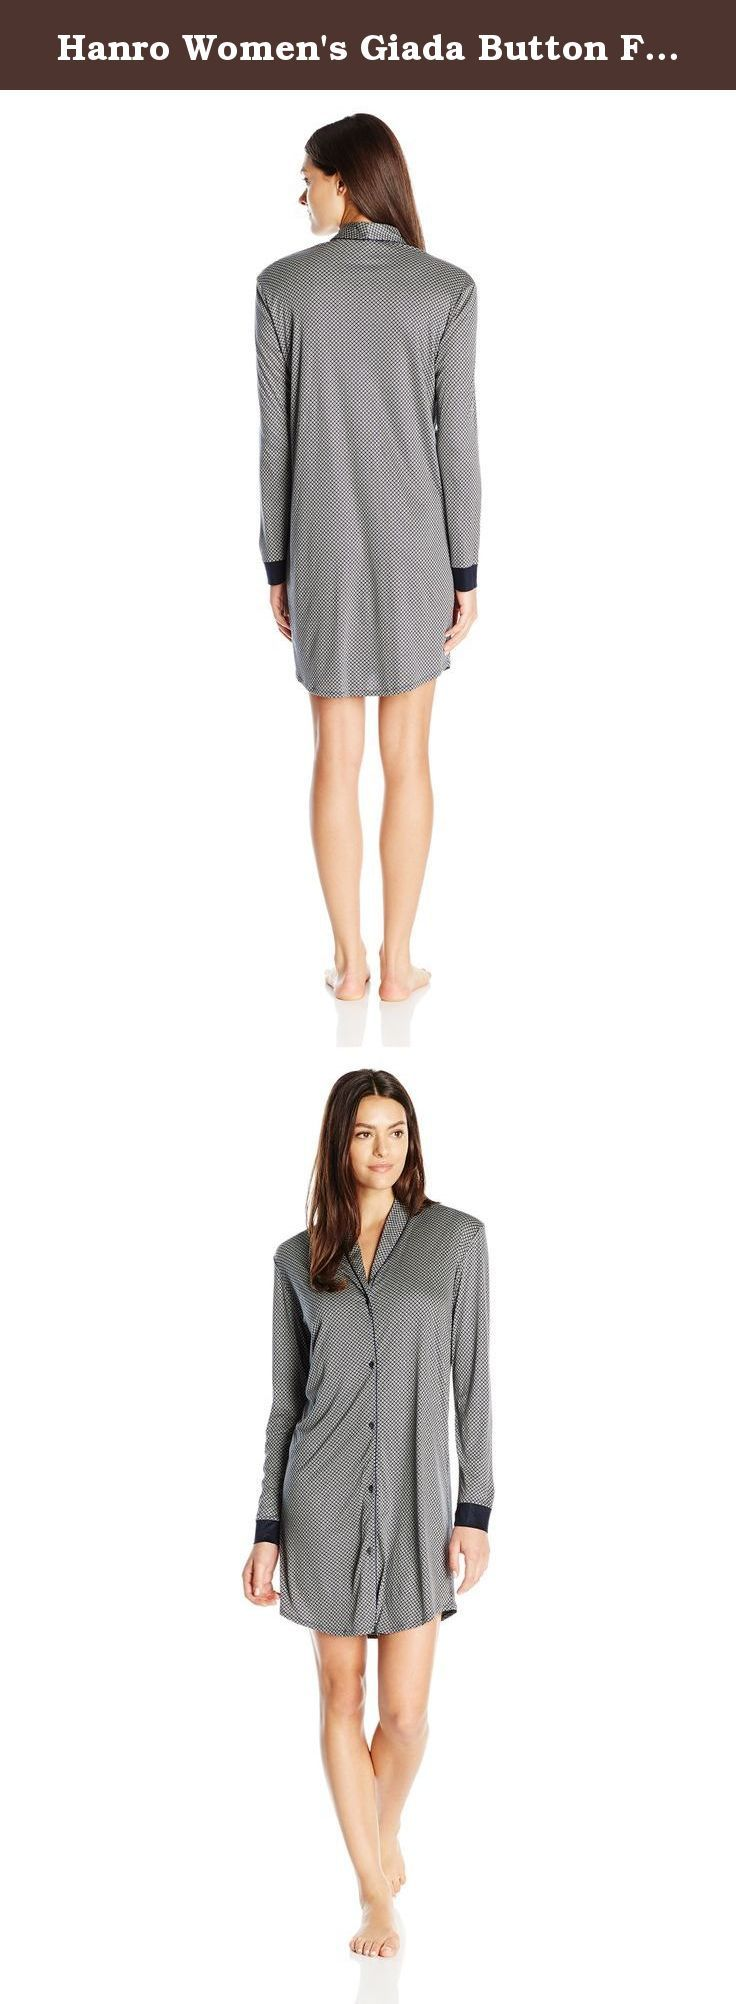 Hanro Women's Giada Button Front Sleepshirt, Blue Minimal Print, Small. Inspired from classic men's nightwear, the giant button front sleep shirt is tailored from soft micro modal jersey and features a modern mini print with navy piping trim details for a fashionably feminine look. With a shawl collar, contrasting cuff details and a rounded hemline, this sleep shirt is perfect for sleeping or lounging.